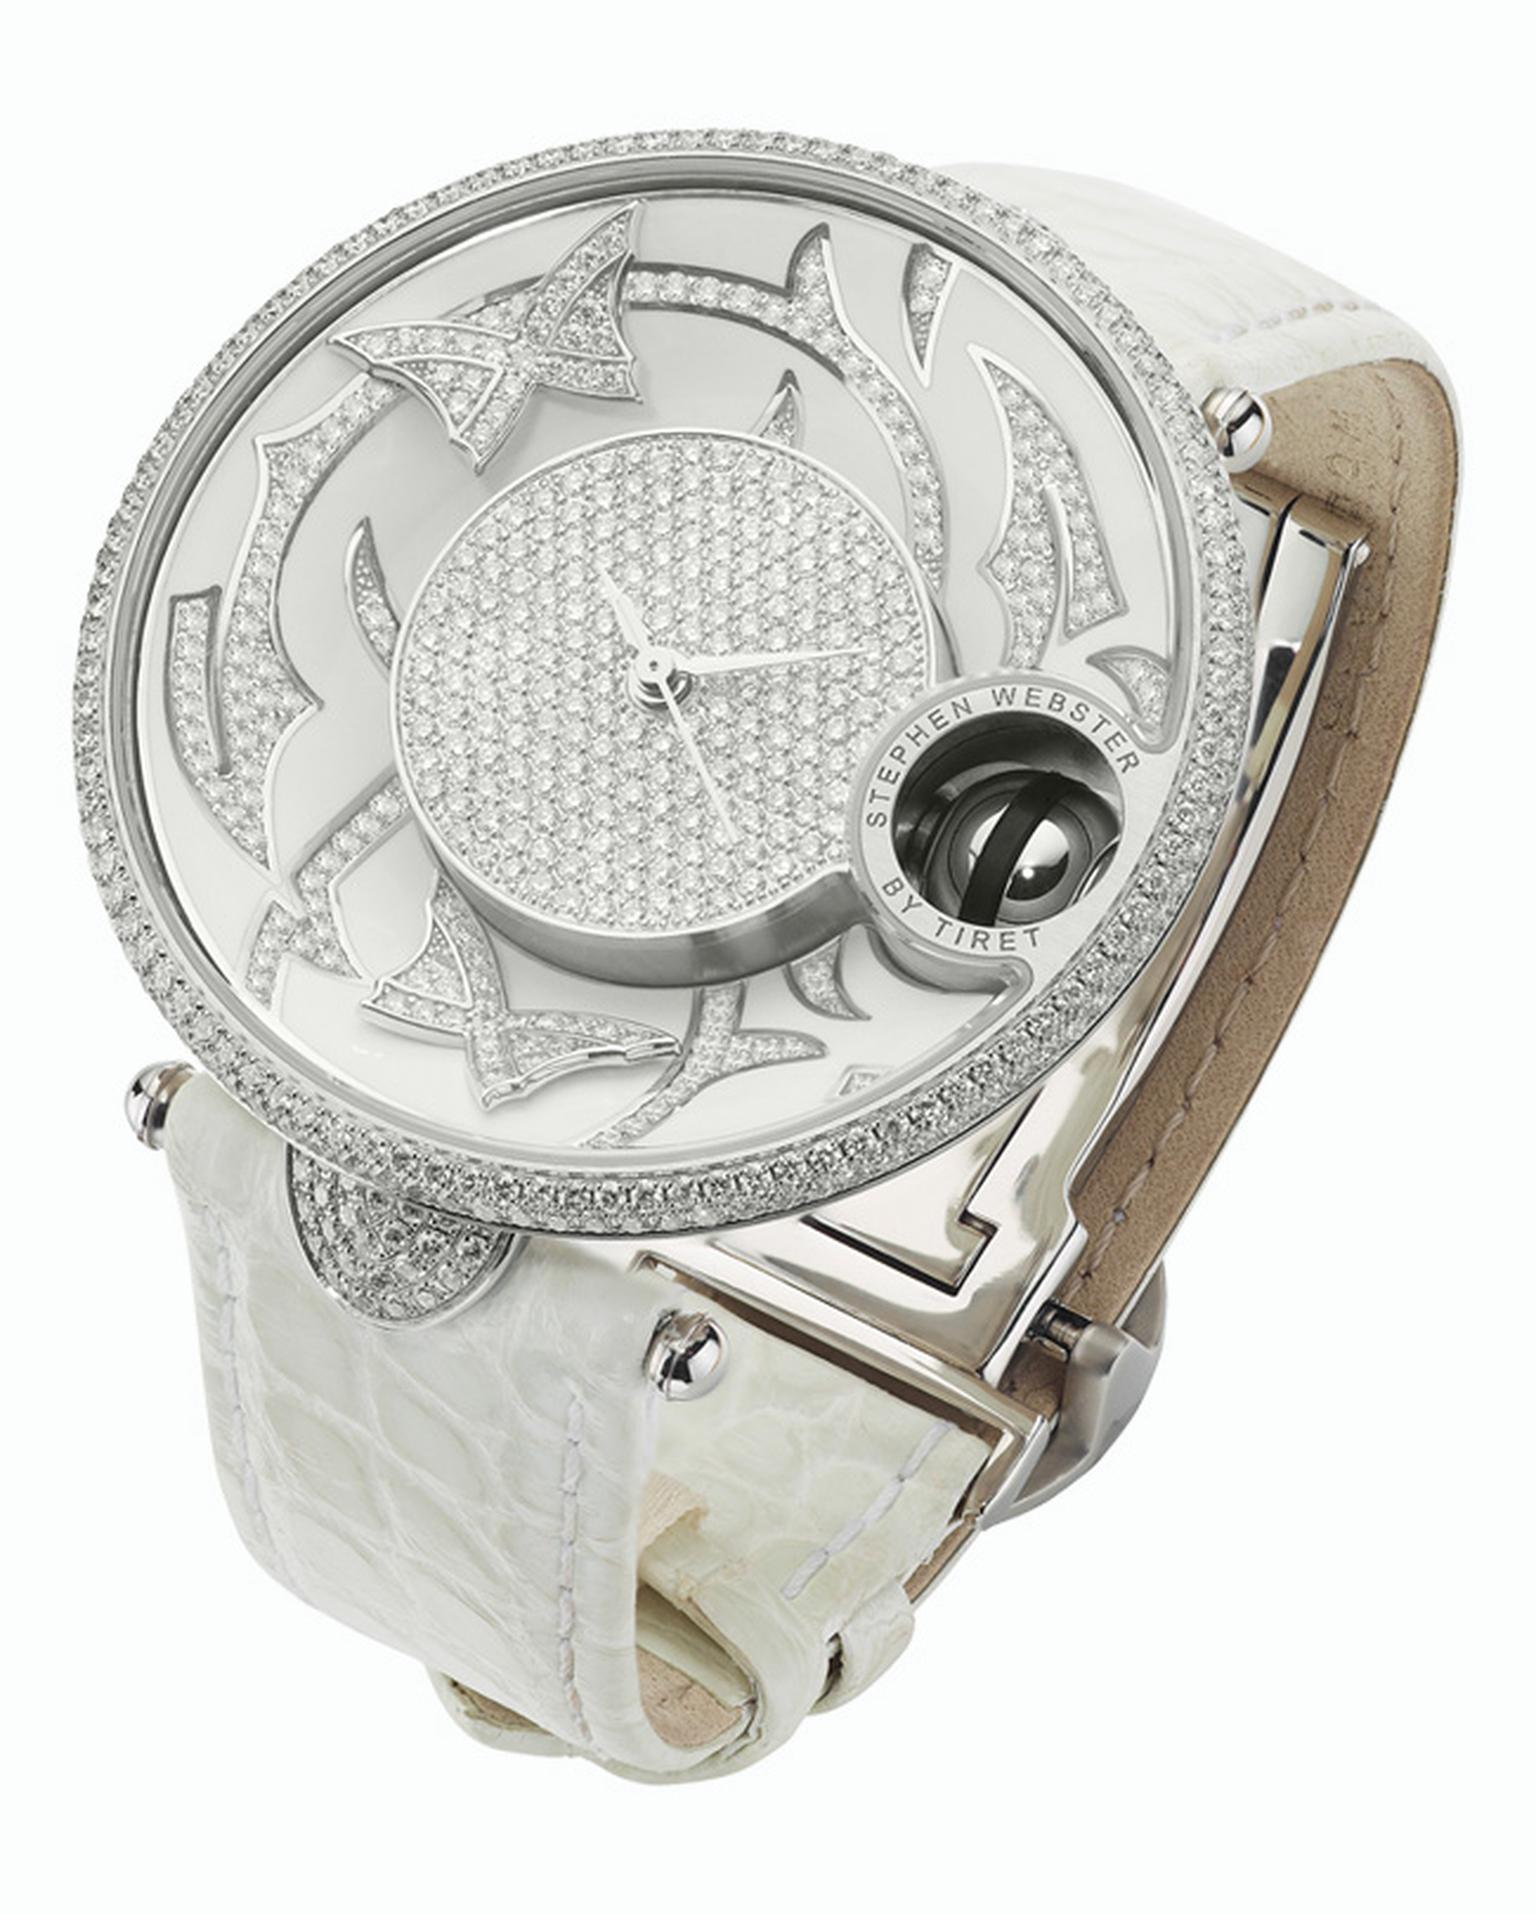 Stephen Webster Fly by Night with Tiret watch with white diamonds_20140110_Main